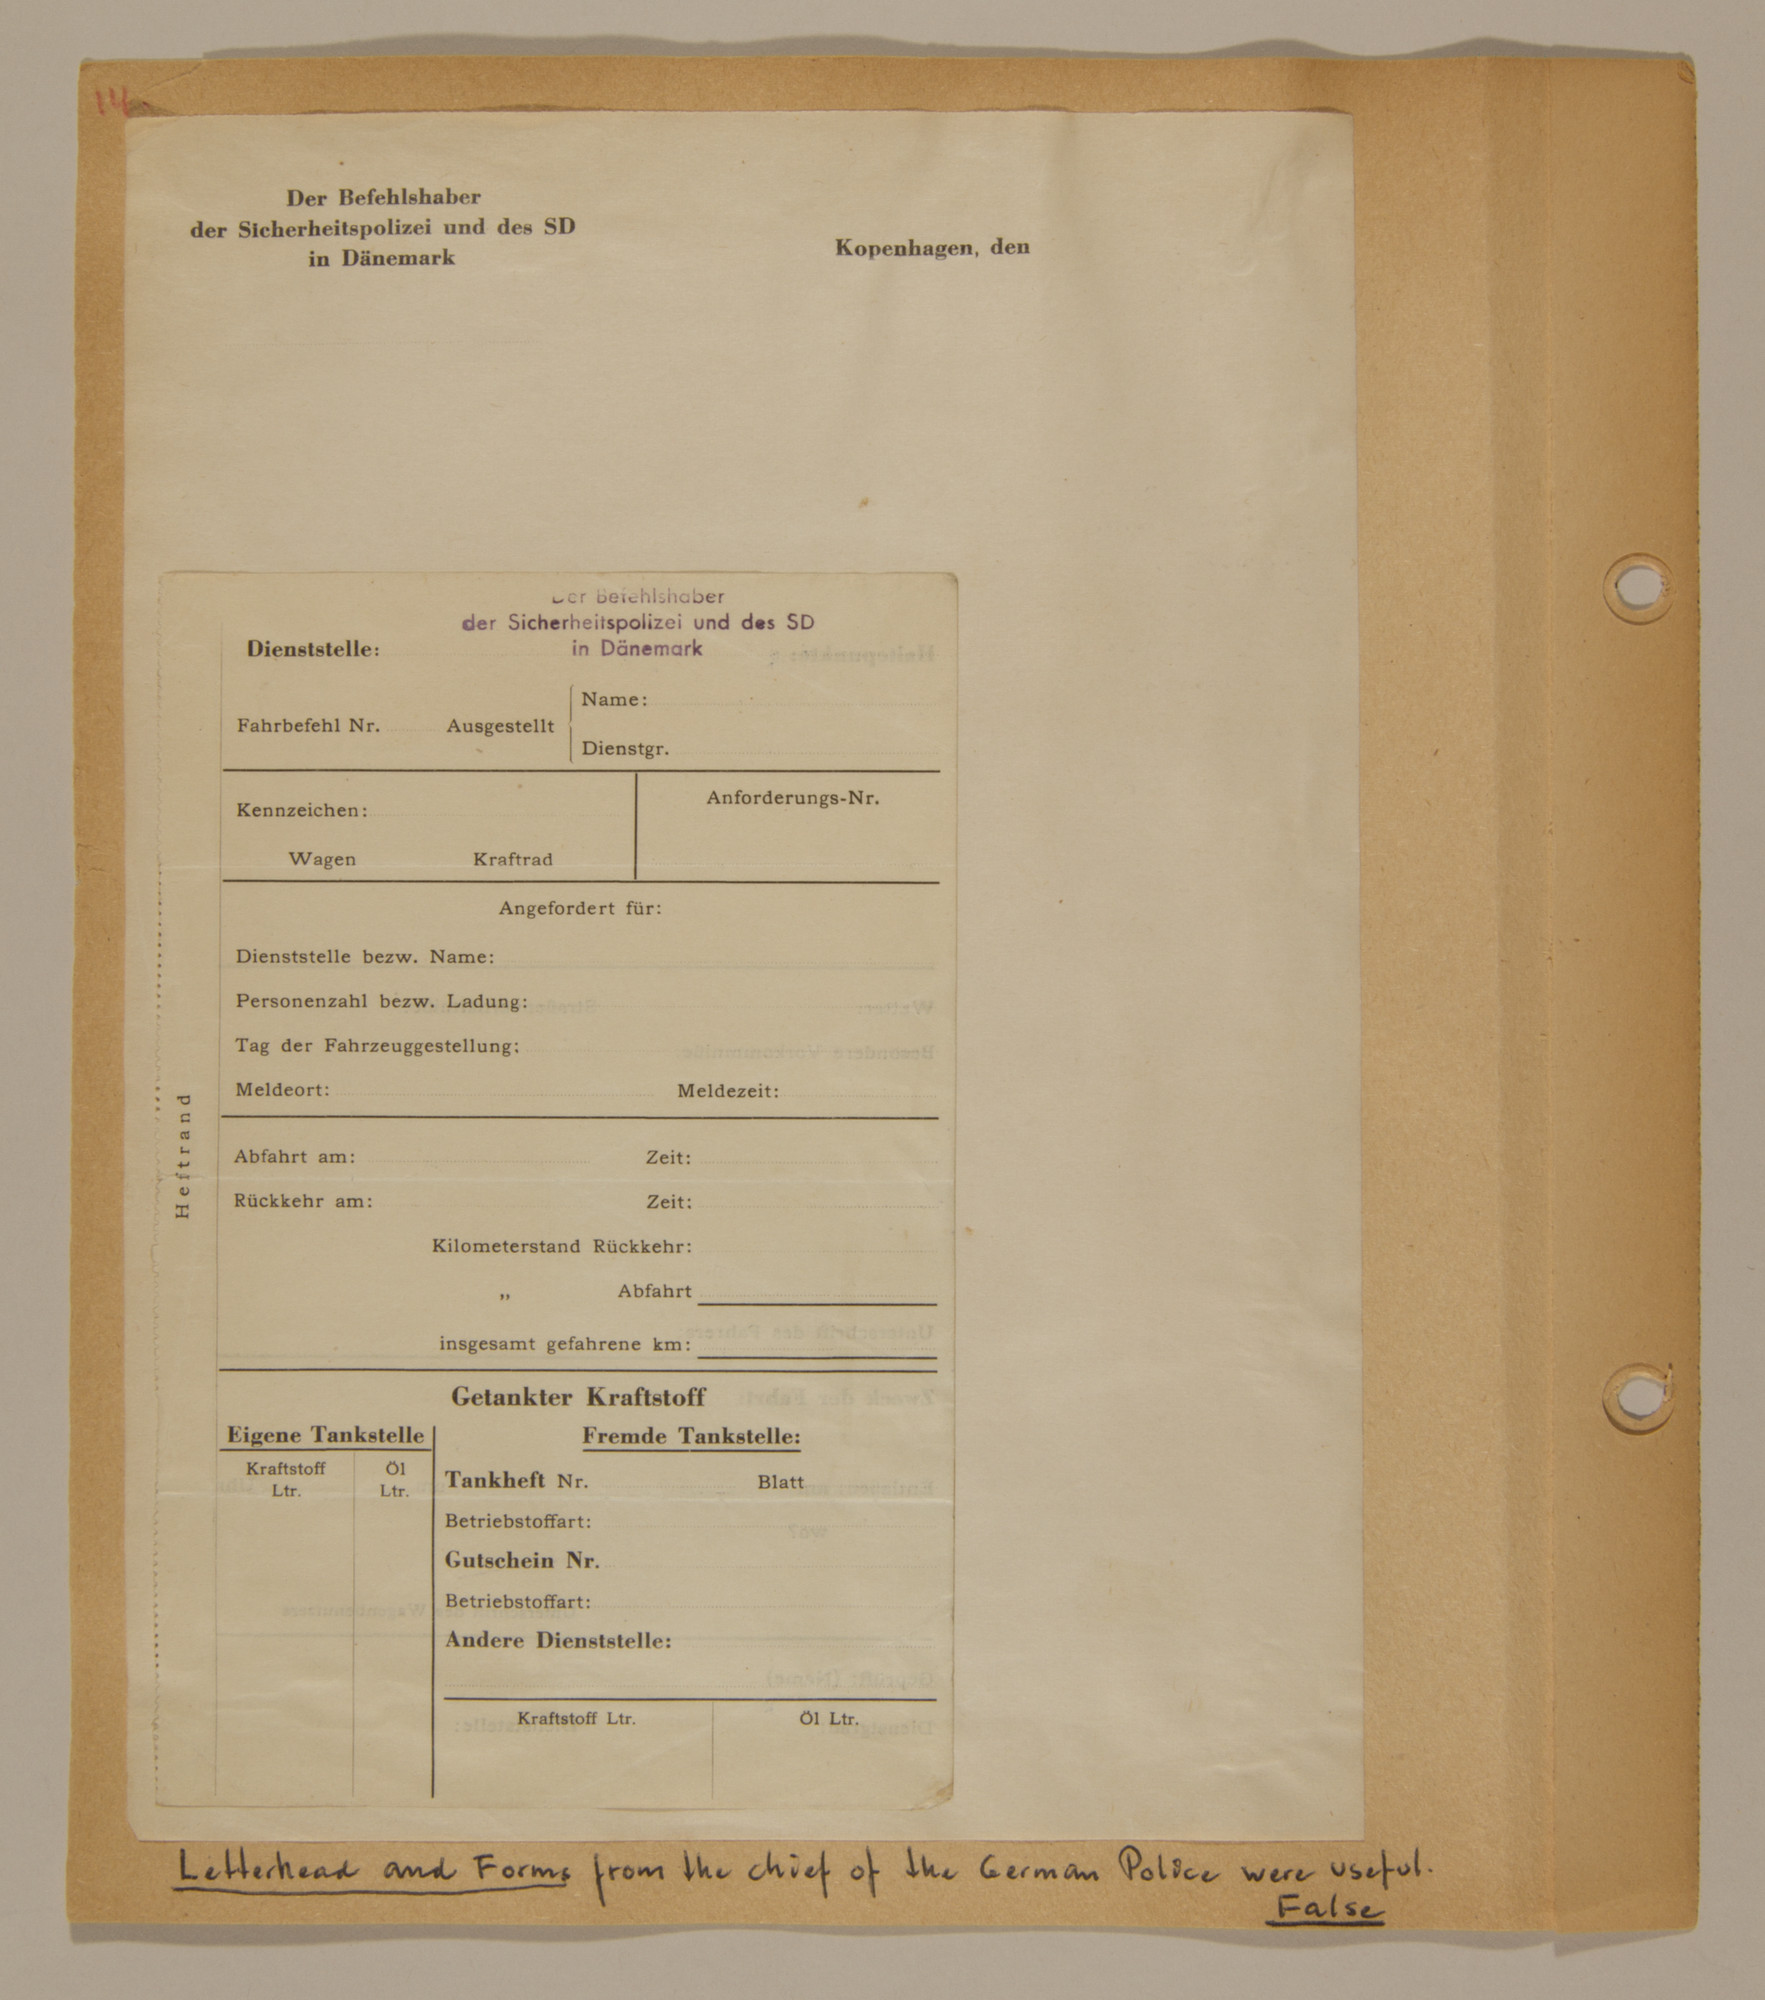 Page from volume three of a set of scrapbooks compiled by Bjorn Sibbern, a Danish policeman and resistance member, documenting the German occupation of Denmark.  This page contains false letterhead and forms from the chief of the German police.